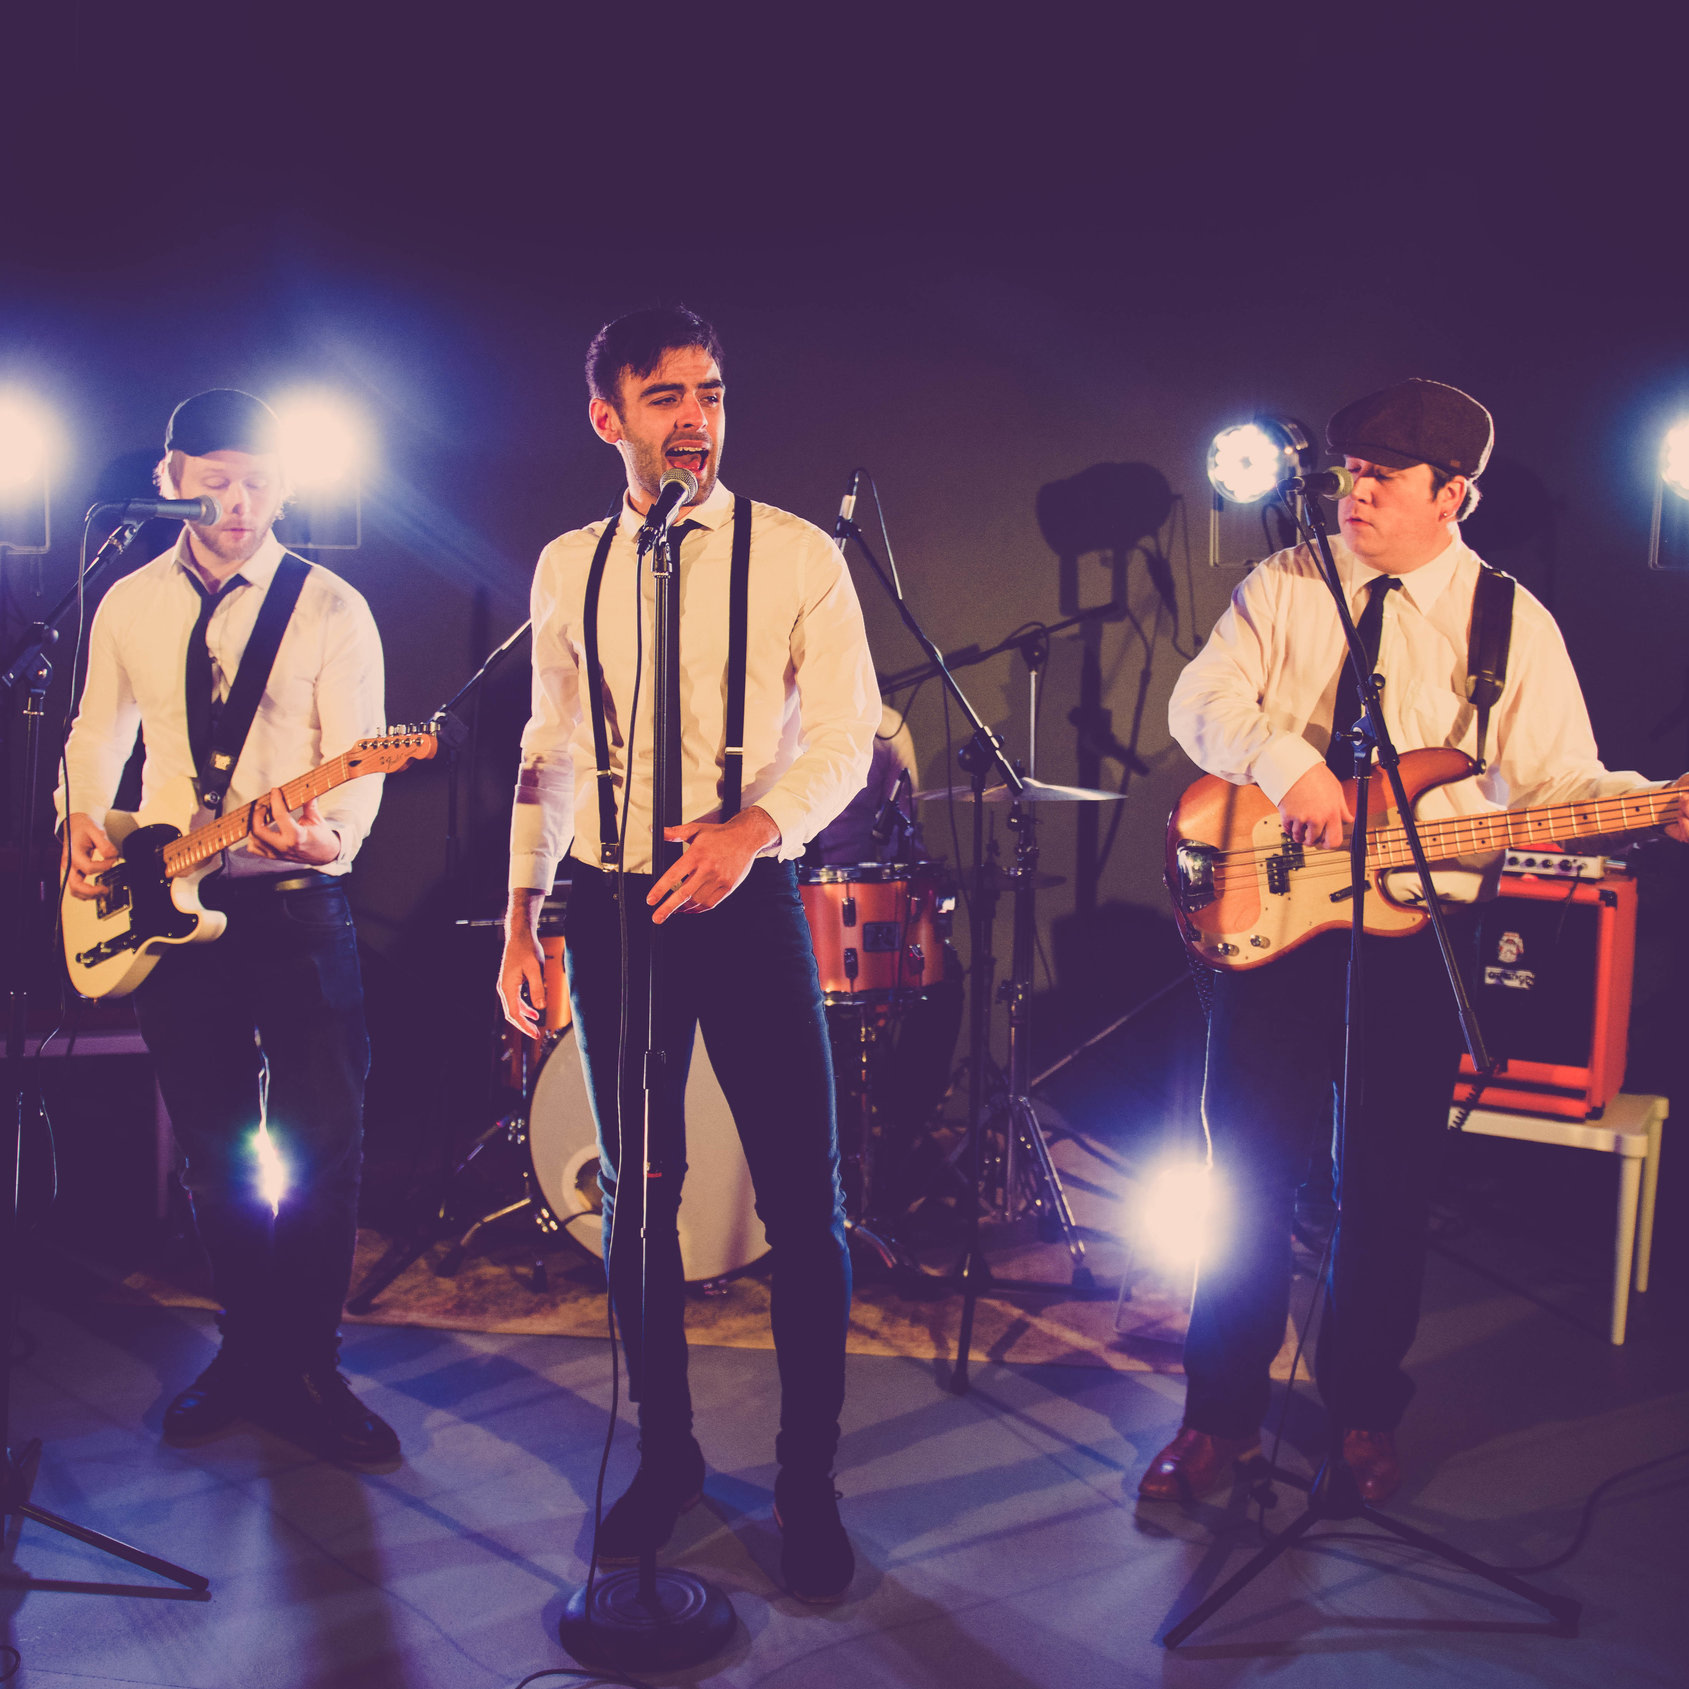 THE SWING - Sophisticated. Stylish. The Swing. Male fronted four-piece swing & pop band that will take you back in time with a extensive repetoire that incdludes plenty of floor-filling classics, as well as the latest favourites.